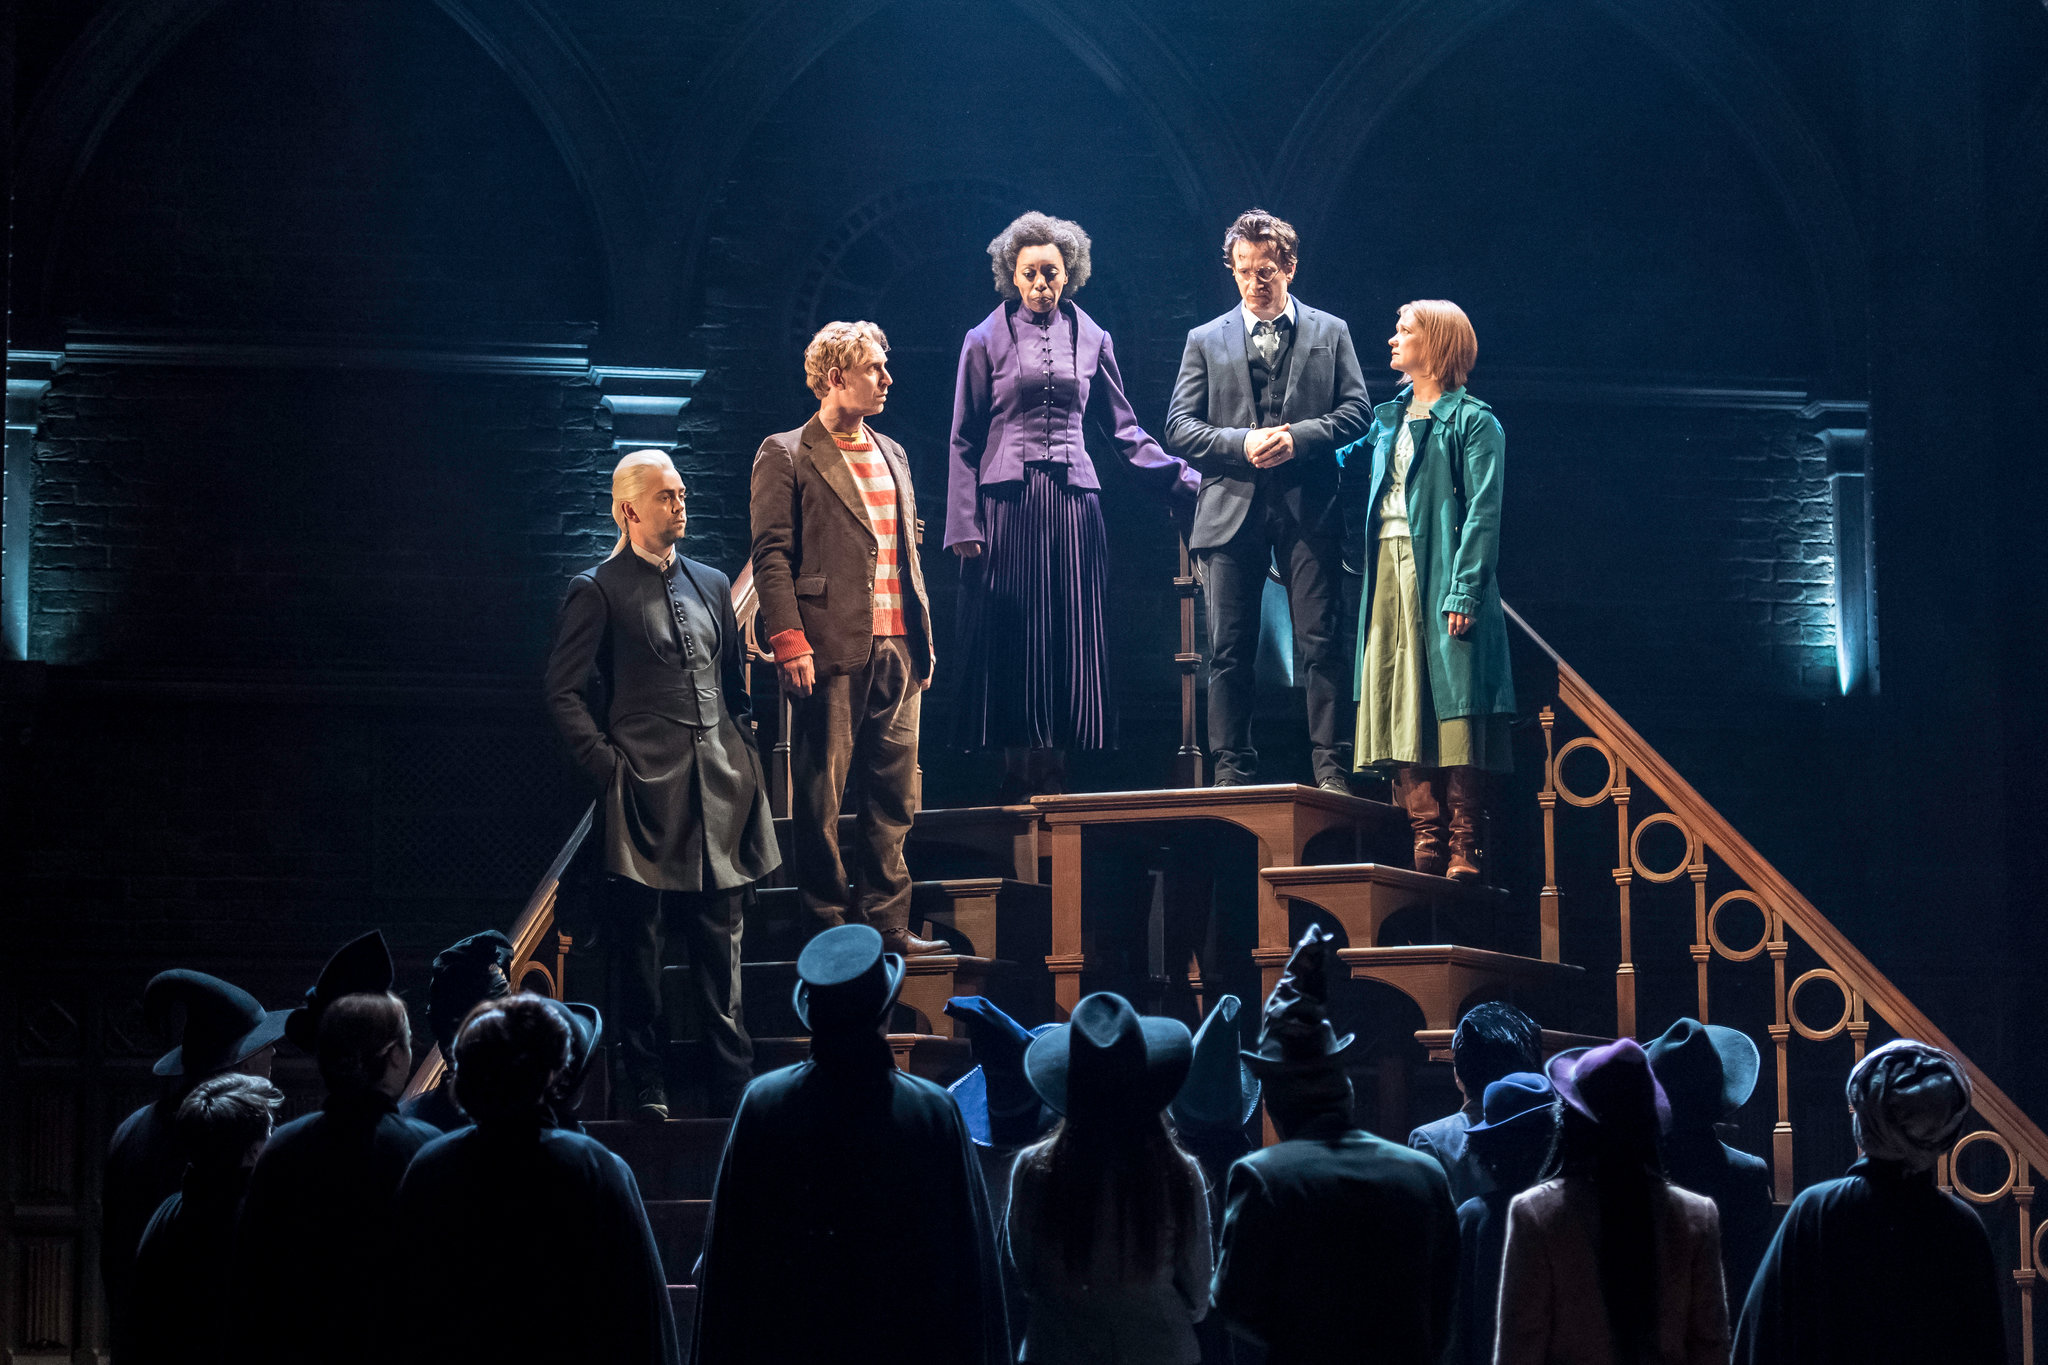 Harry Potter and The Cursed Child - Part 1 & 2 (10/1 7:30PM & 10/2 7:30PM) at Lyric Theatre